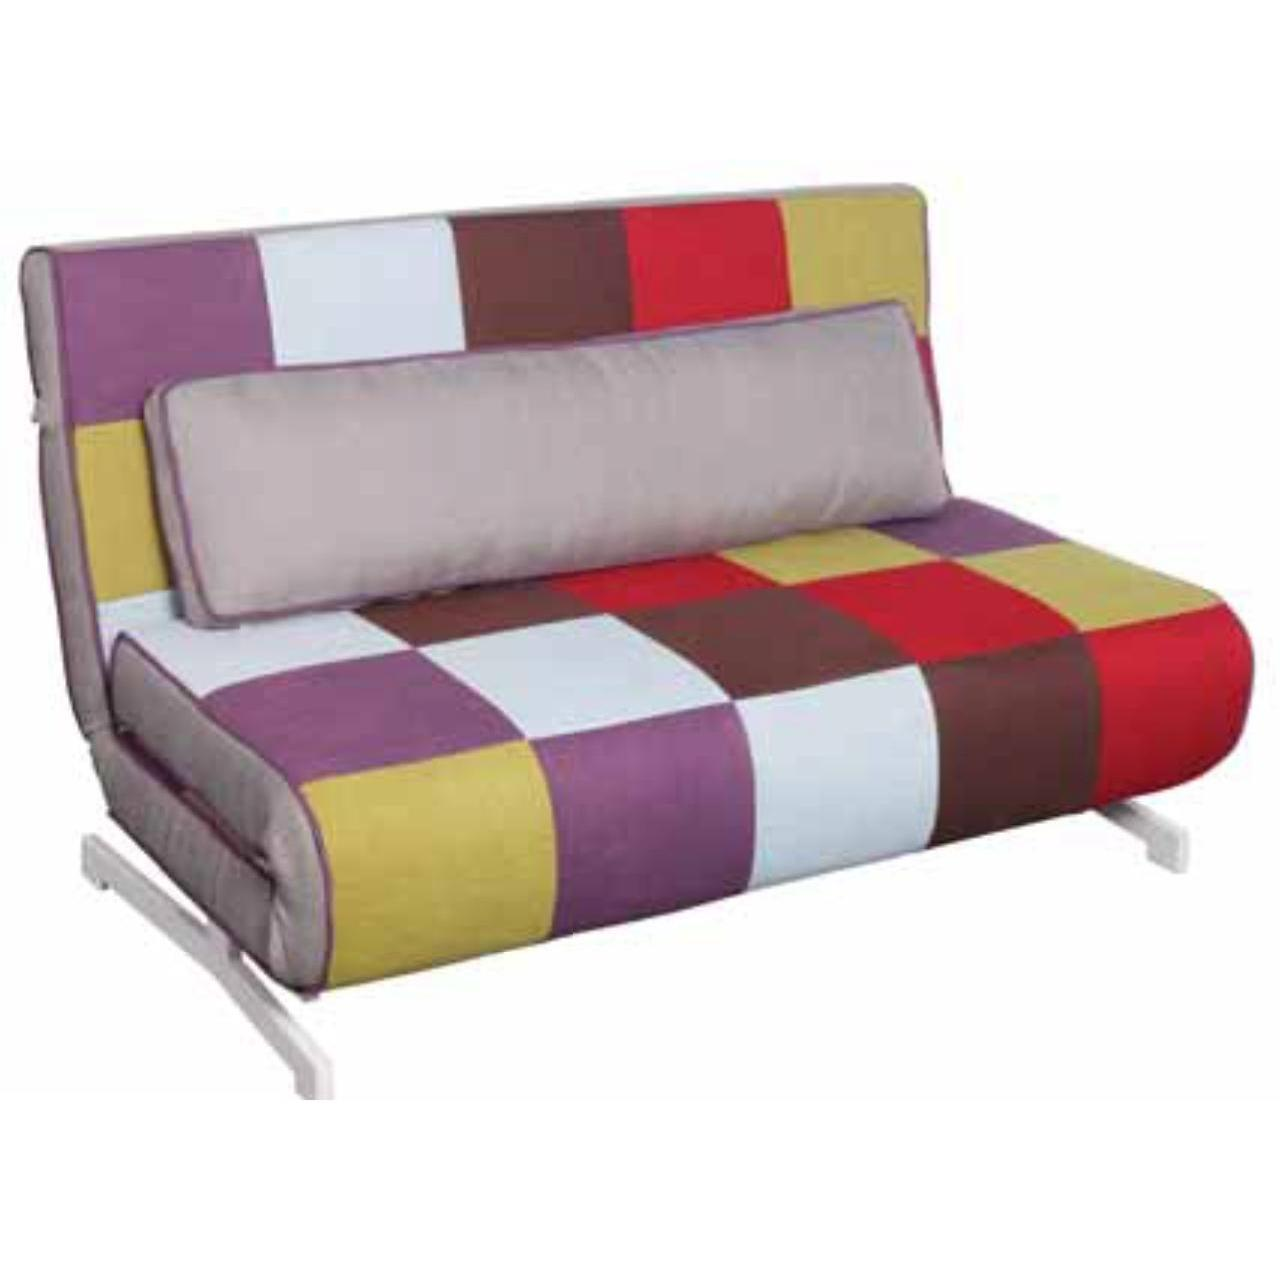 Full Size of Sofa Patchwork Where To Buy Cover Diy Bed Ireland Stag Dfs Furniture Covers Material Doll Pink Uk In L Form Weißes Dauerschläfer Blaues Barock Bezug Mit Sofa Sofa Patchwork